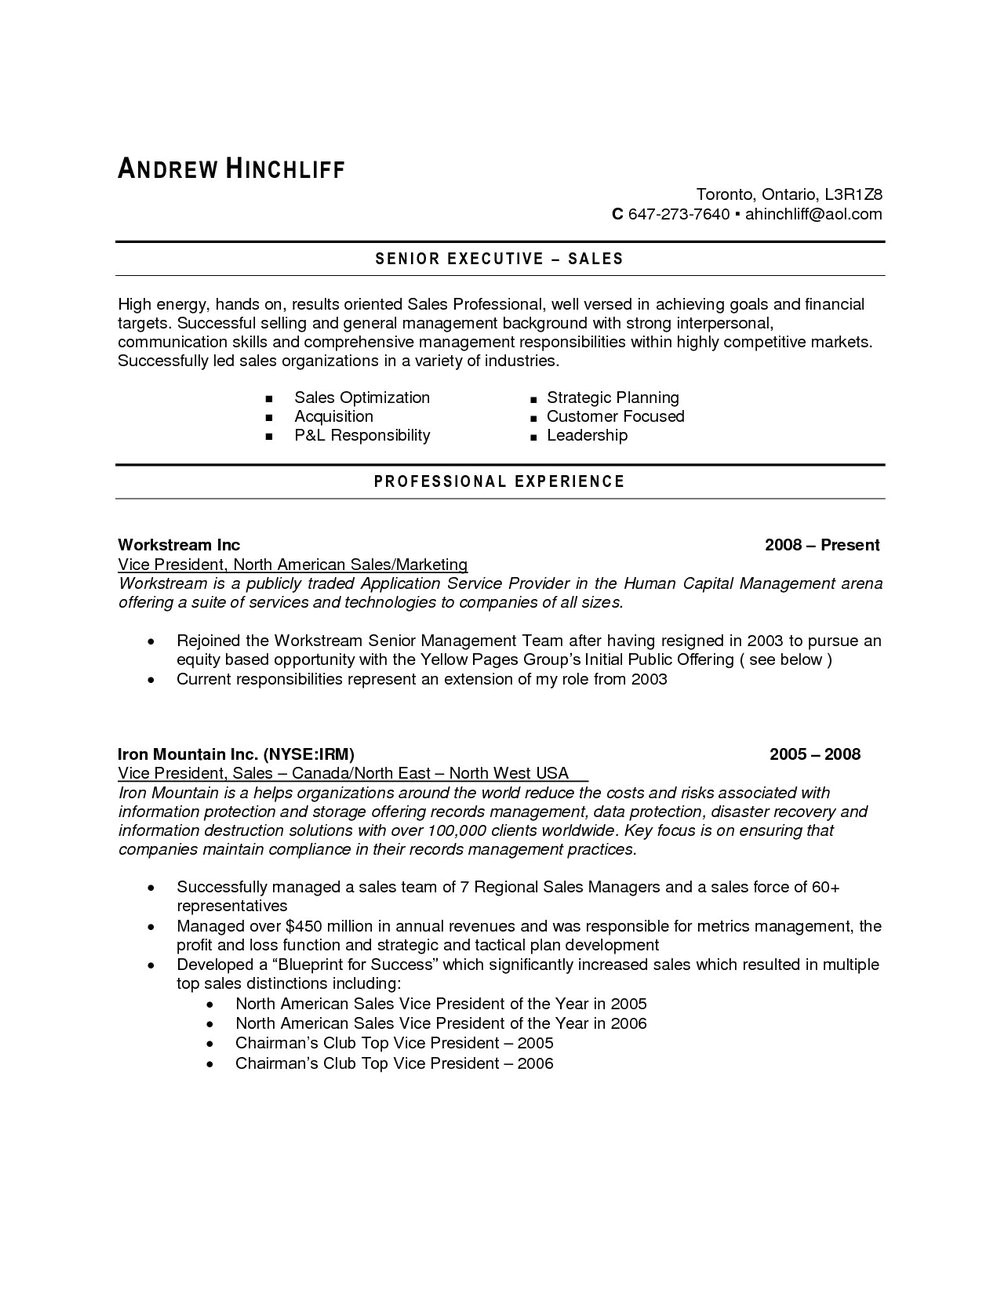 Resume format for Canada Jobs Sample Resume for Jobs In Canada Mbm Legal